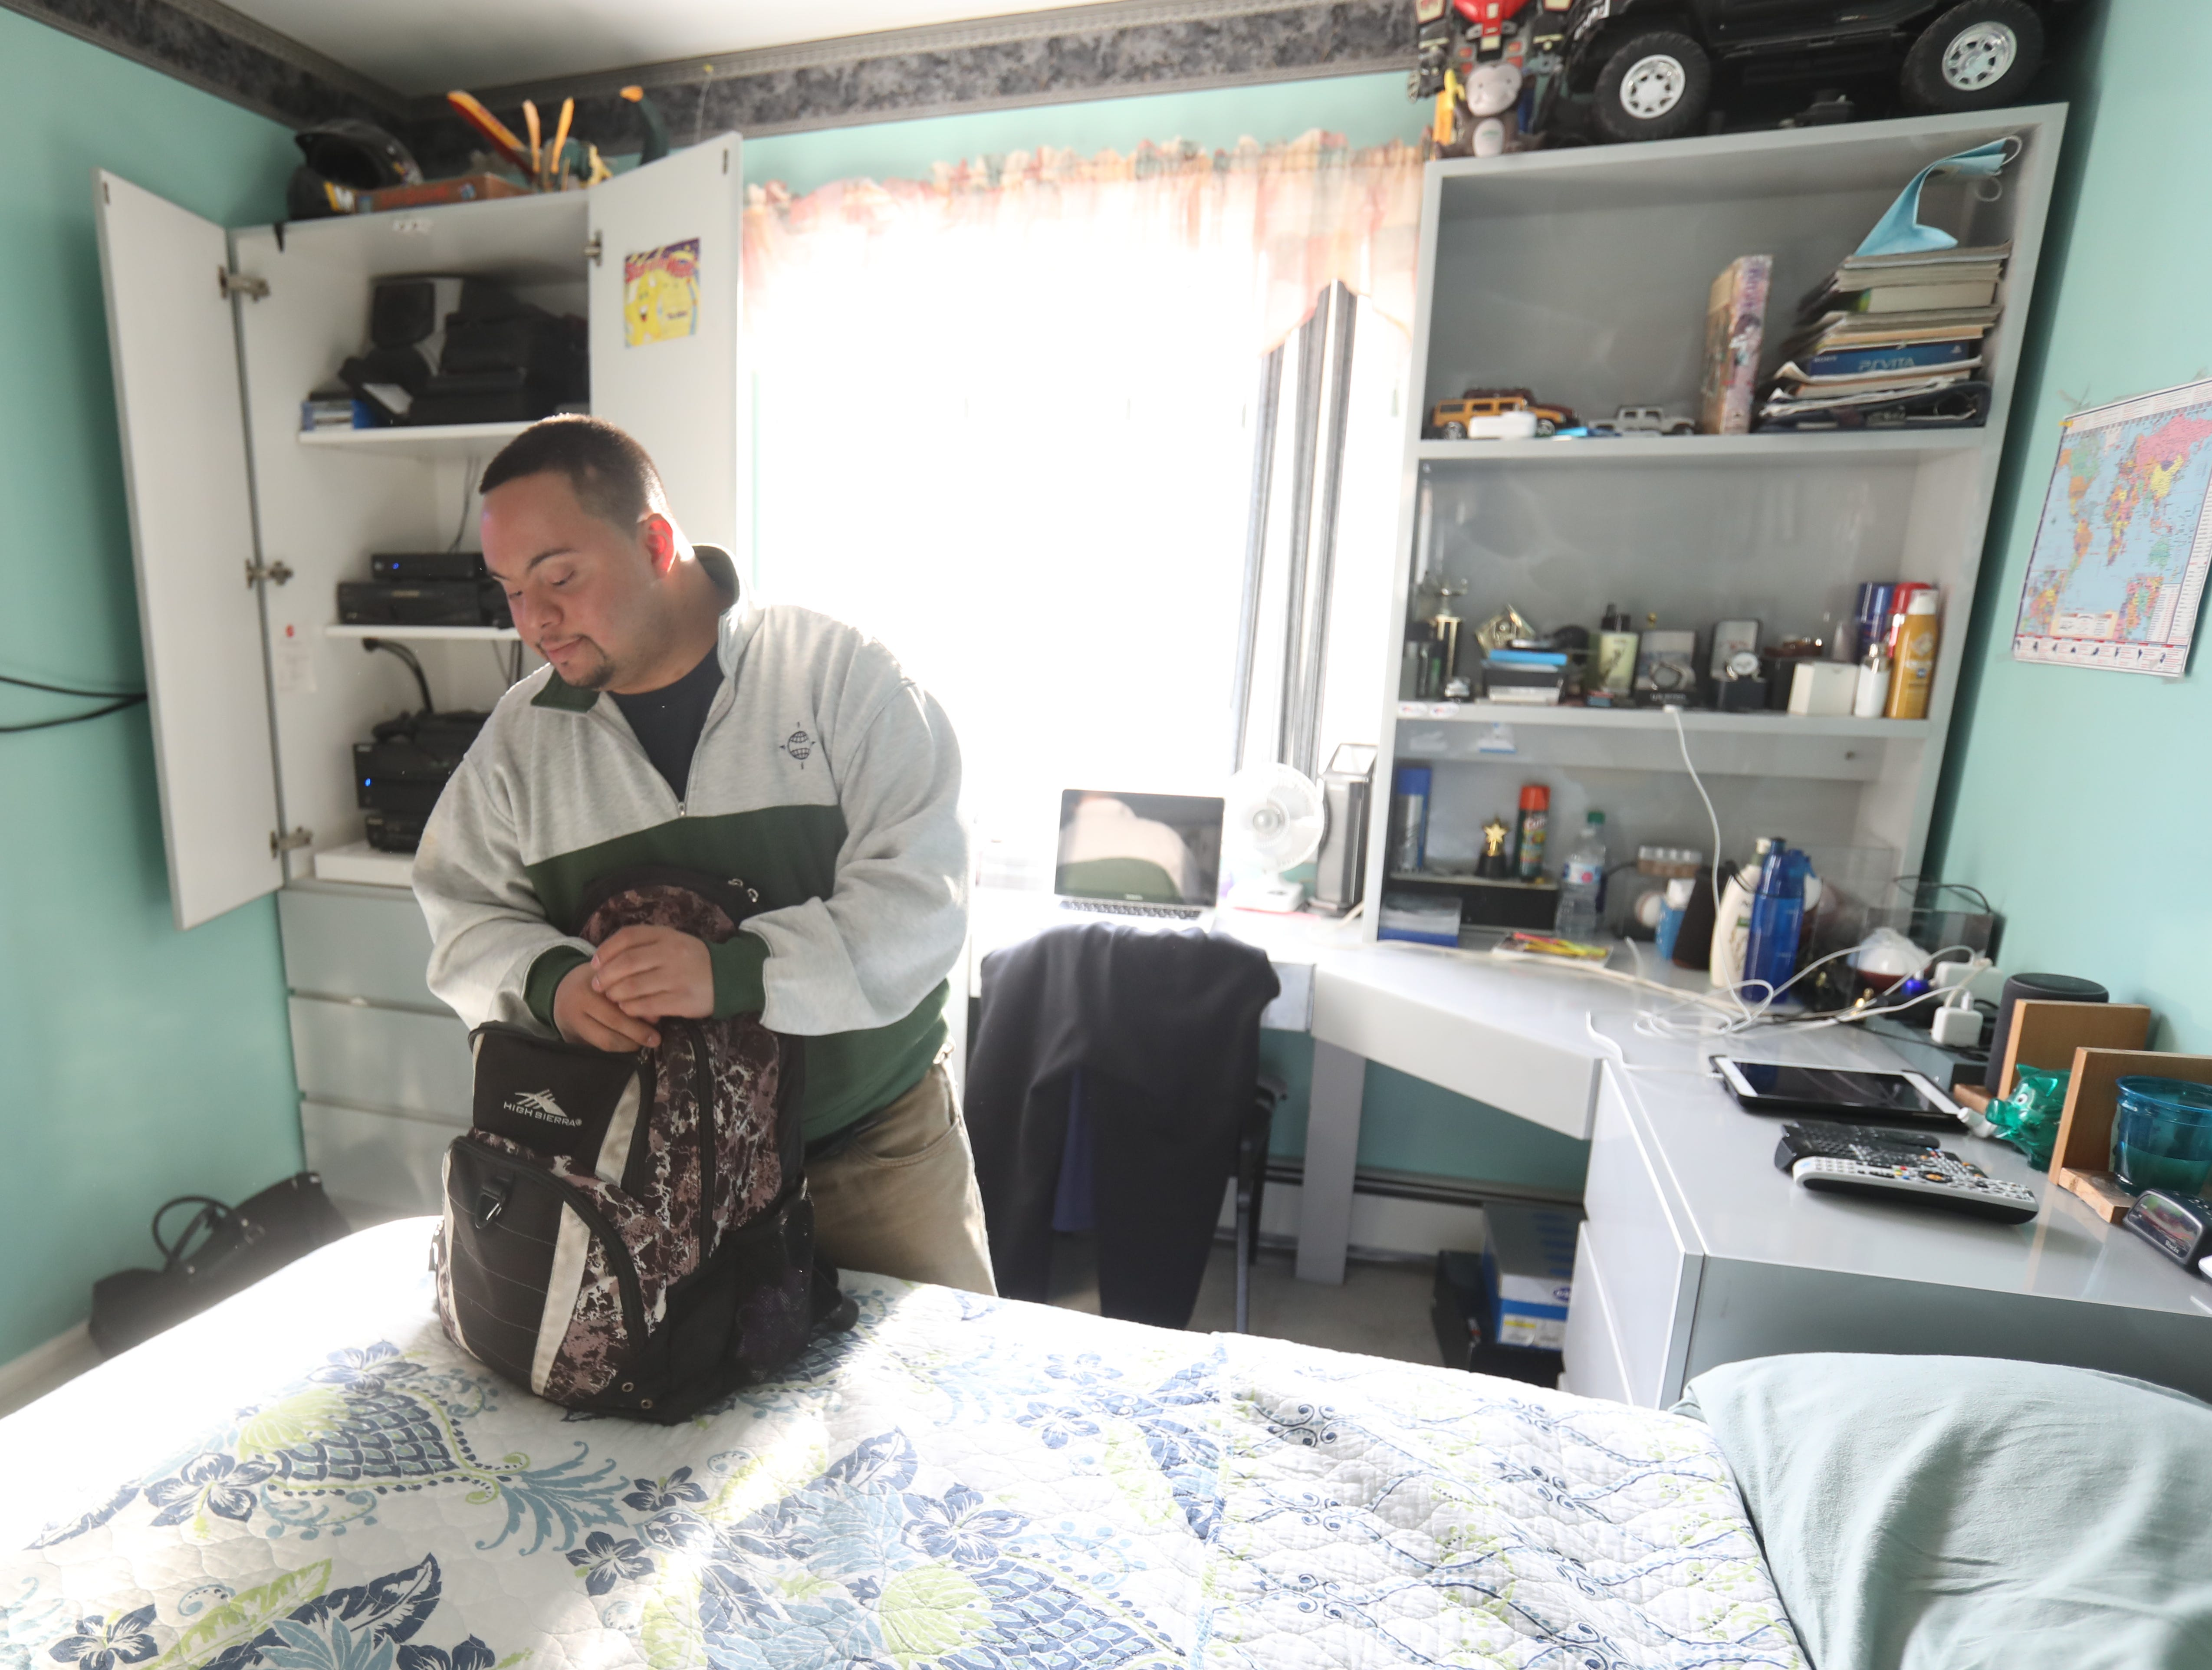 Anthony Mundy, 29 packs his bag in his bedroom in Spring Valley on March 15, 2019, before his ride picks him up for his day program at Jawano.